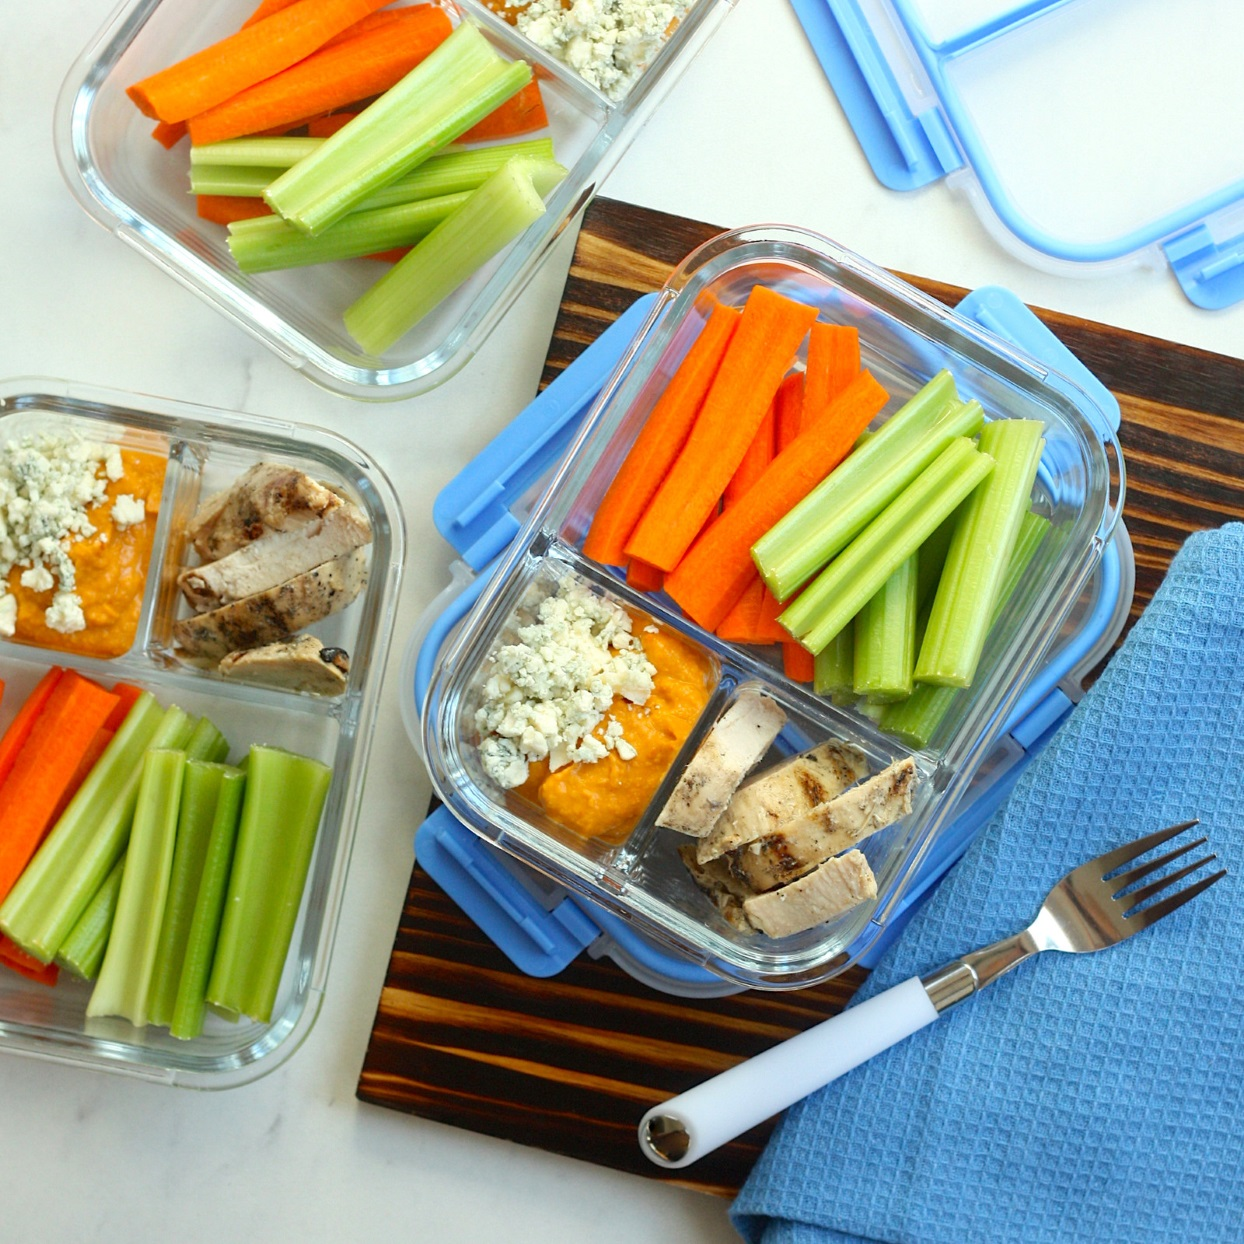 Buffalo-Style Bistro Lunch Box Trusted Brands